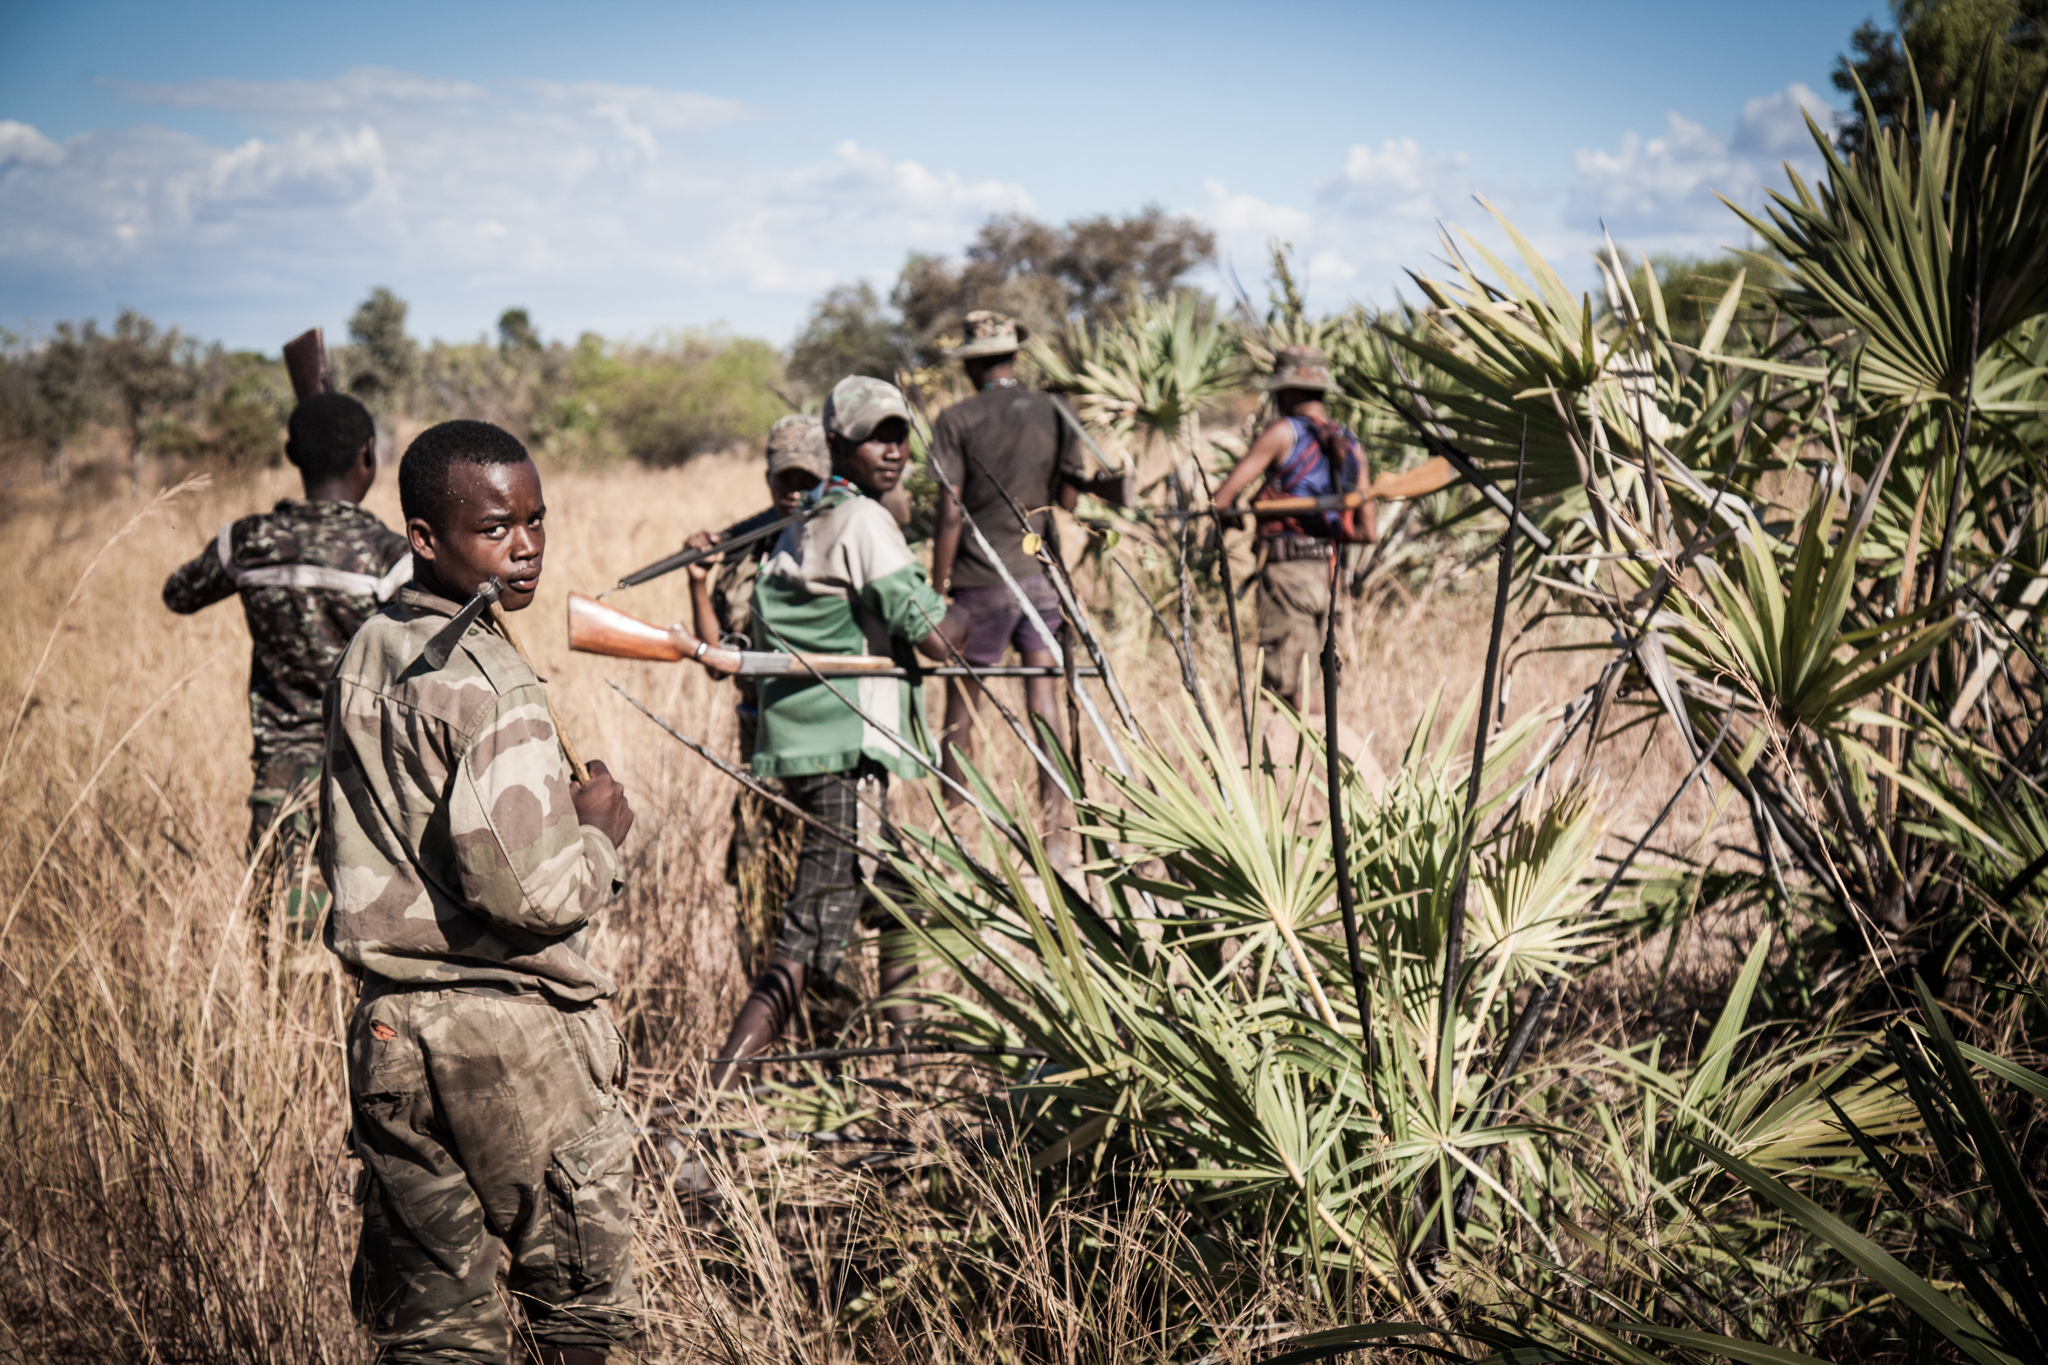 Dahalo (bandits and cattle rustlers) are accused of thousands of murders each year in Madagascar